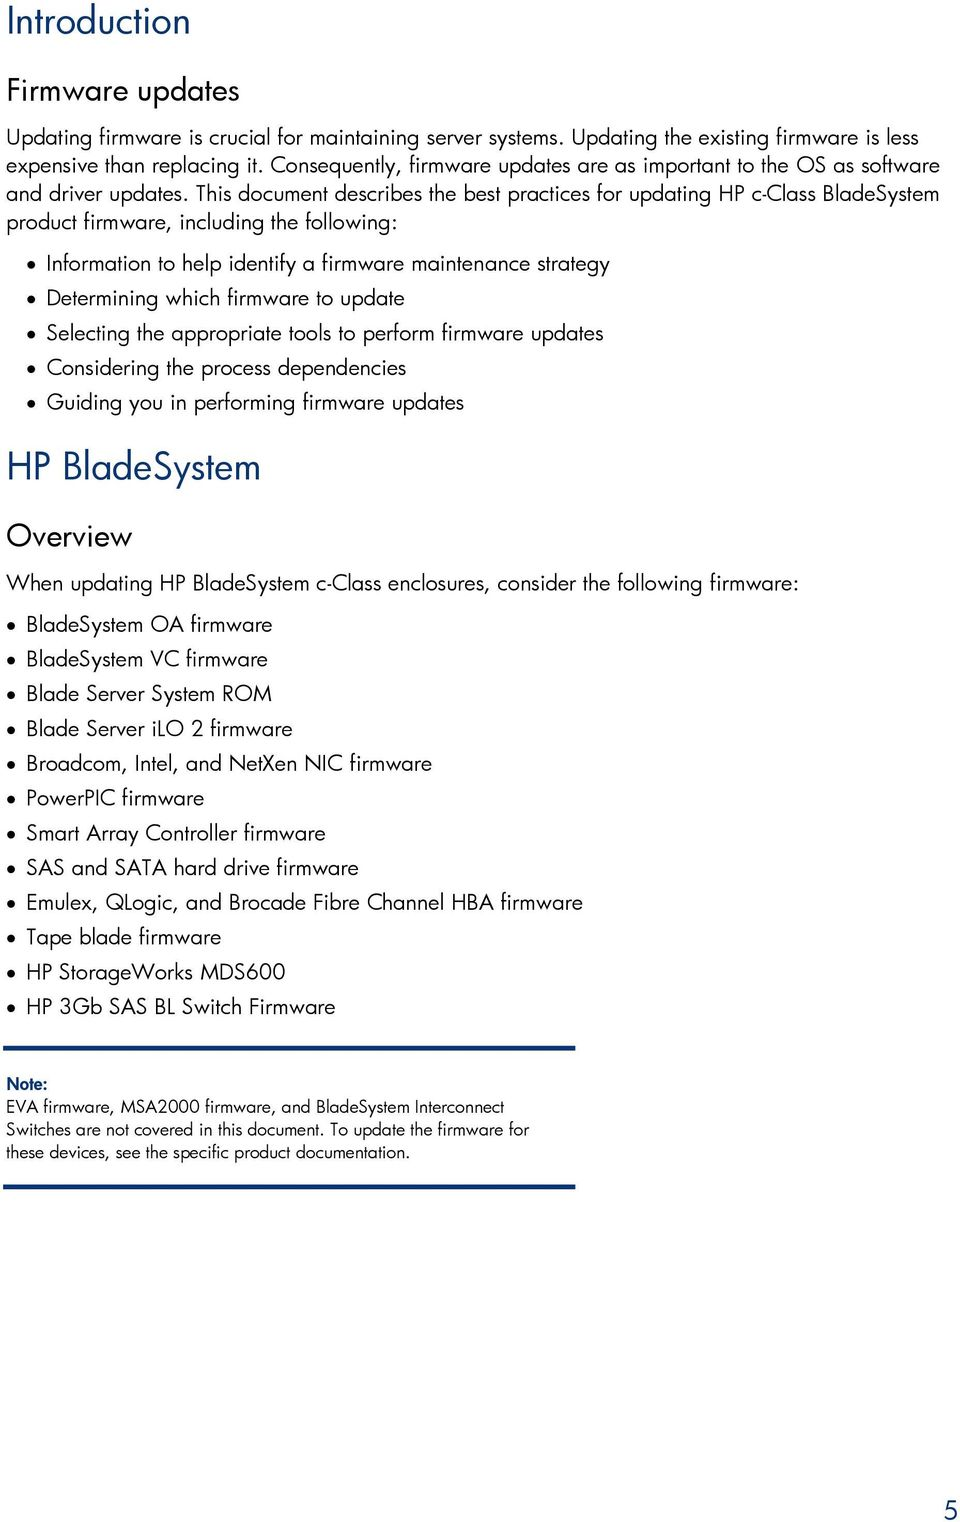 This document describes the best practices for updating HP c-class BladeSystem product firmware, including the following: Information to help identify a firmware maintenance strategy Determining